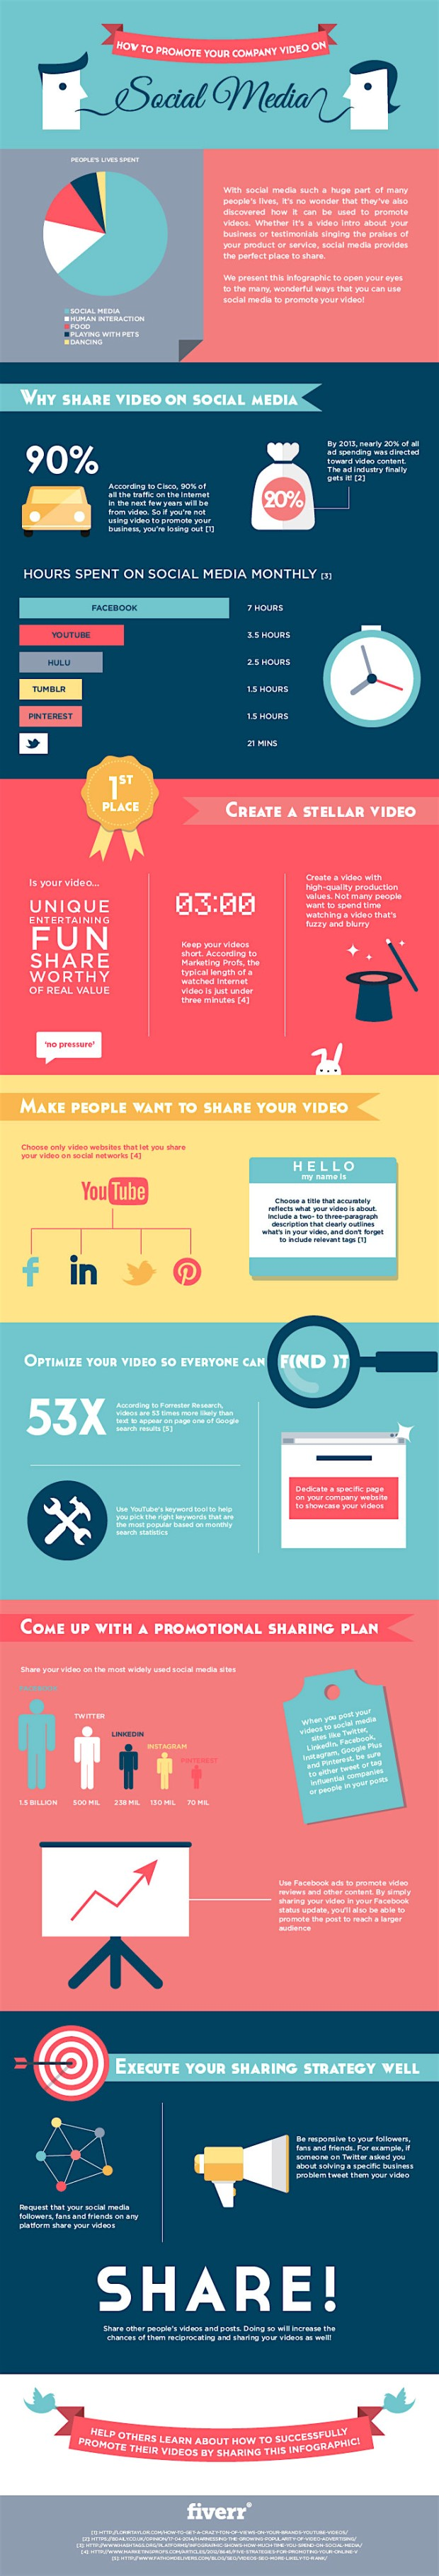 Share Video Infographic